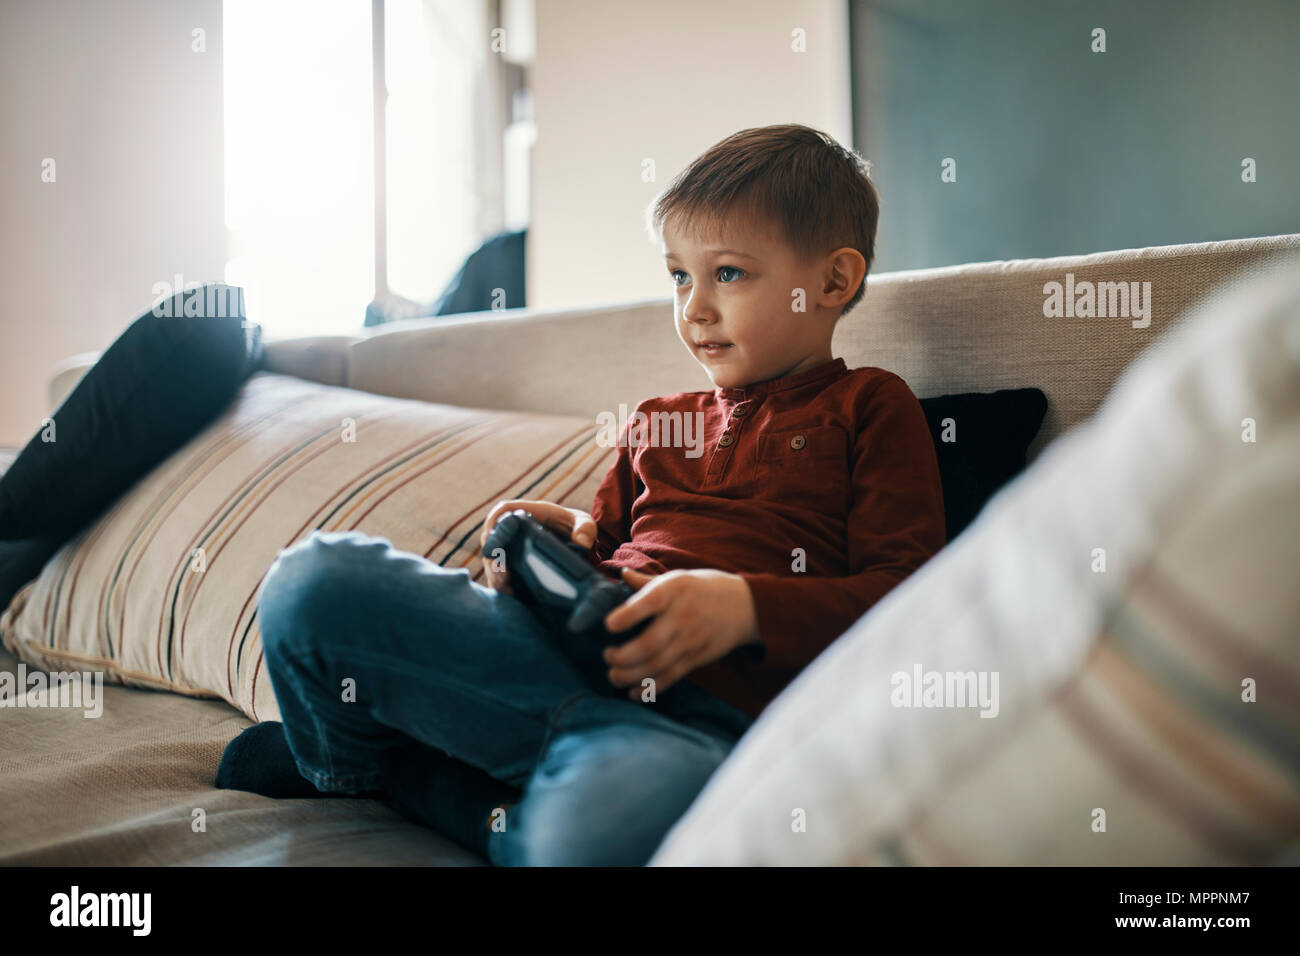 Portrait of little boy sitting on the couch playing computer game - Stock Image